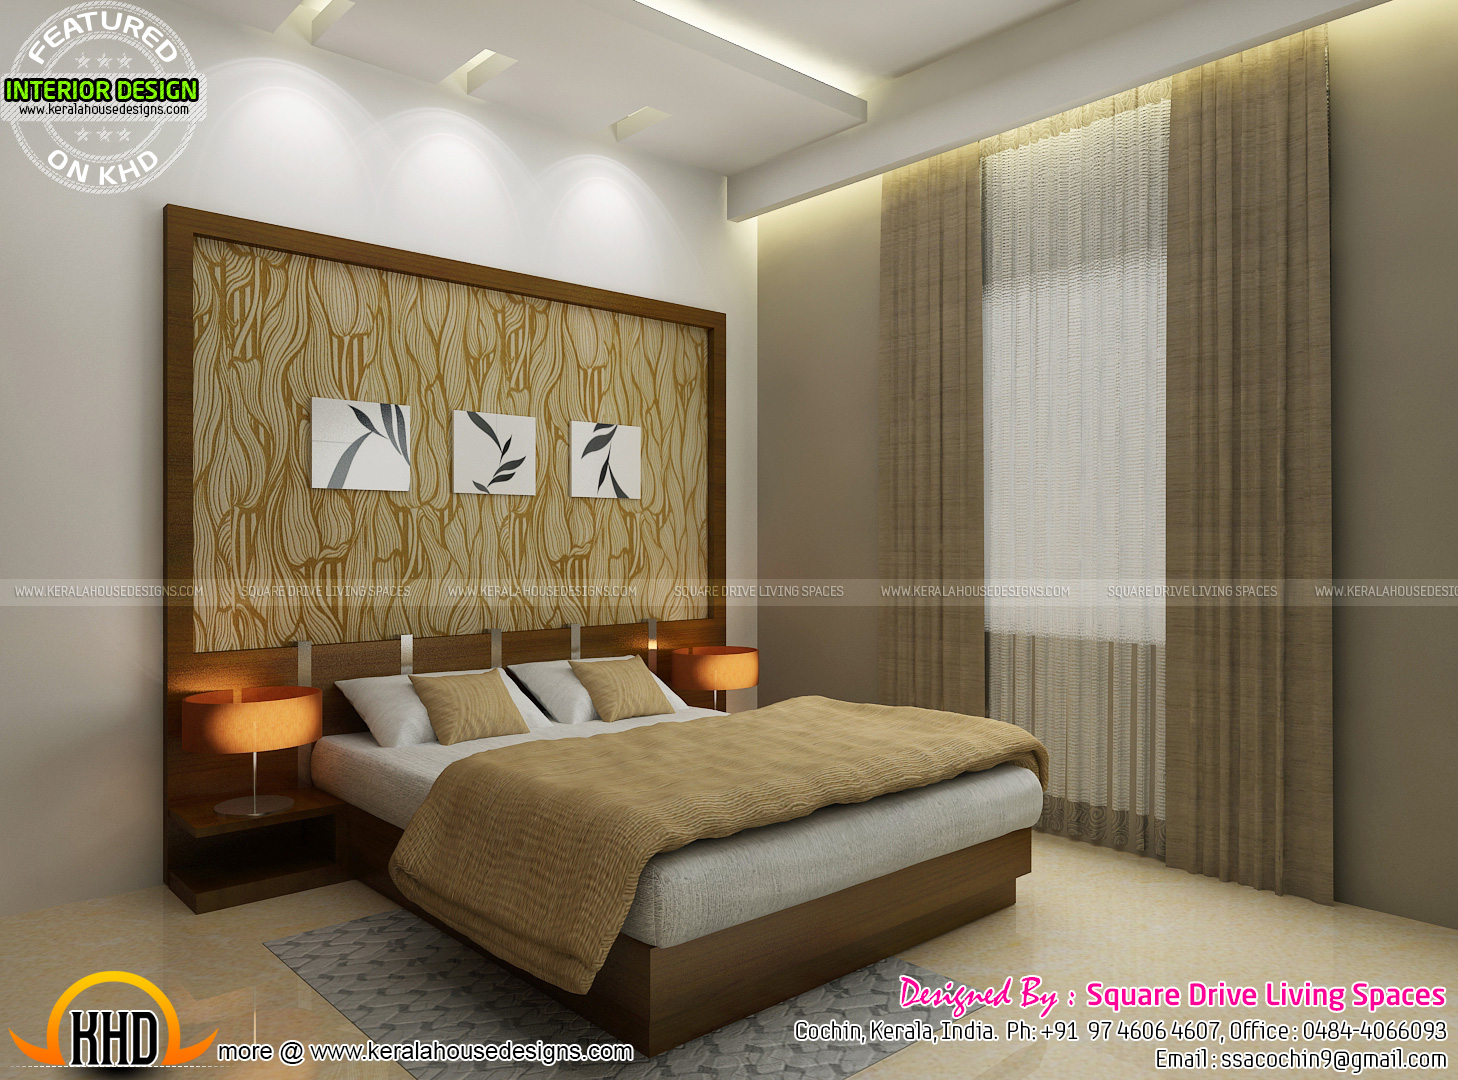 Interior designs of master bedroom living kitchen and for Bedroom interior design pictures